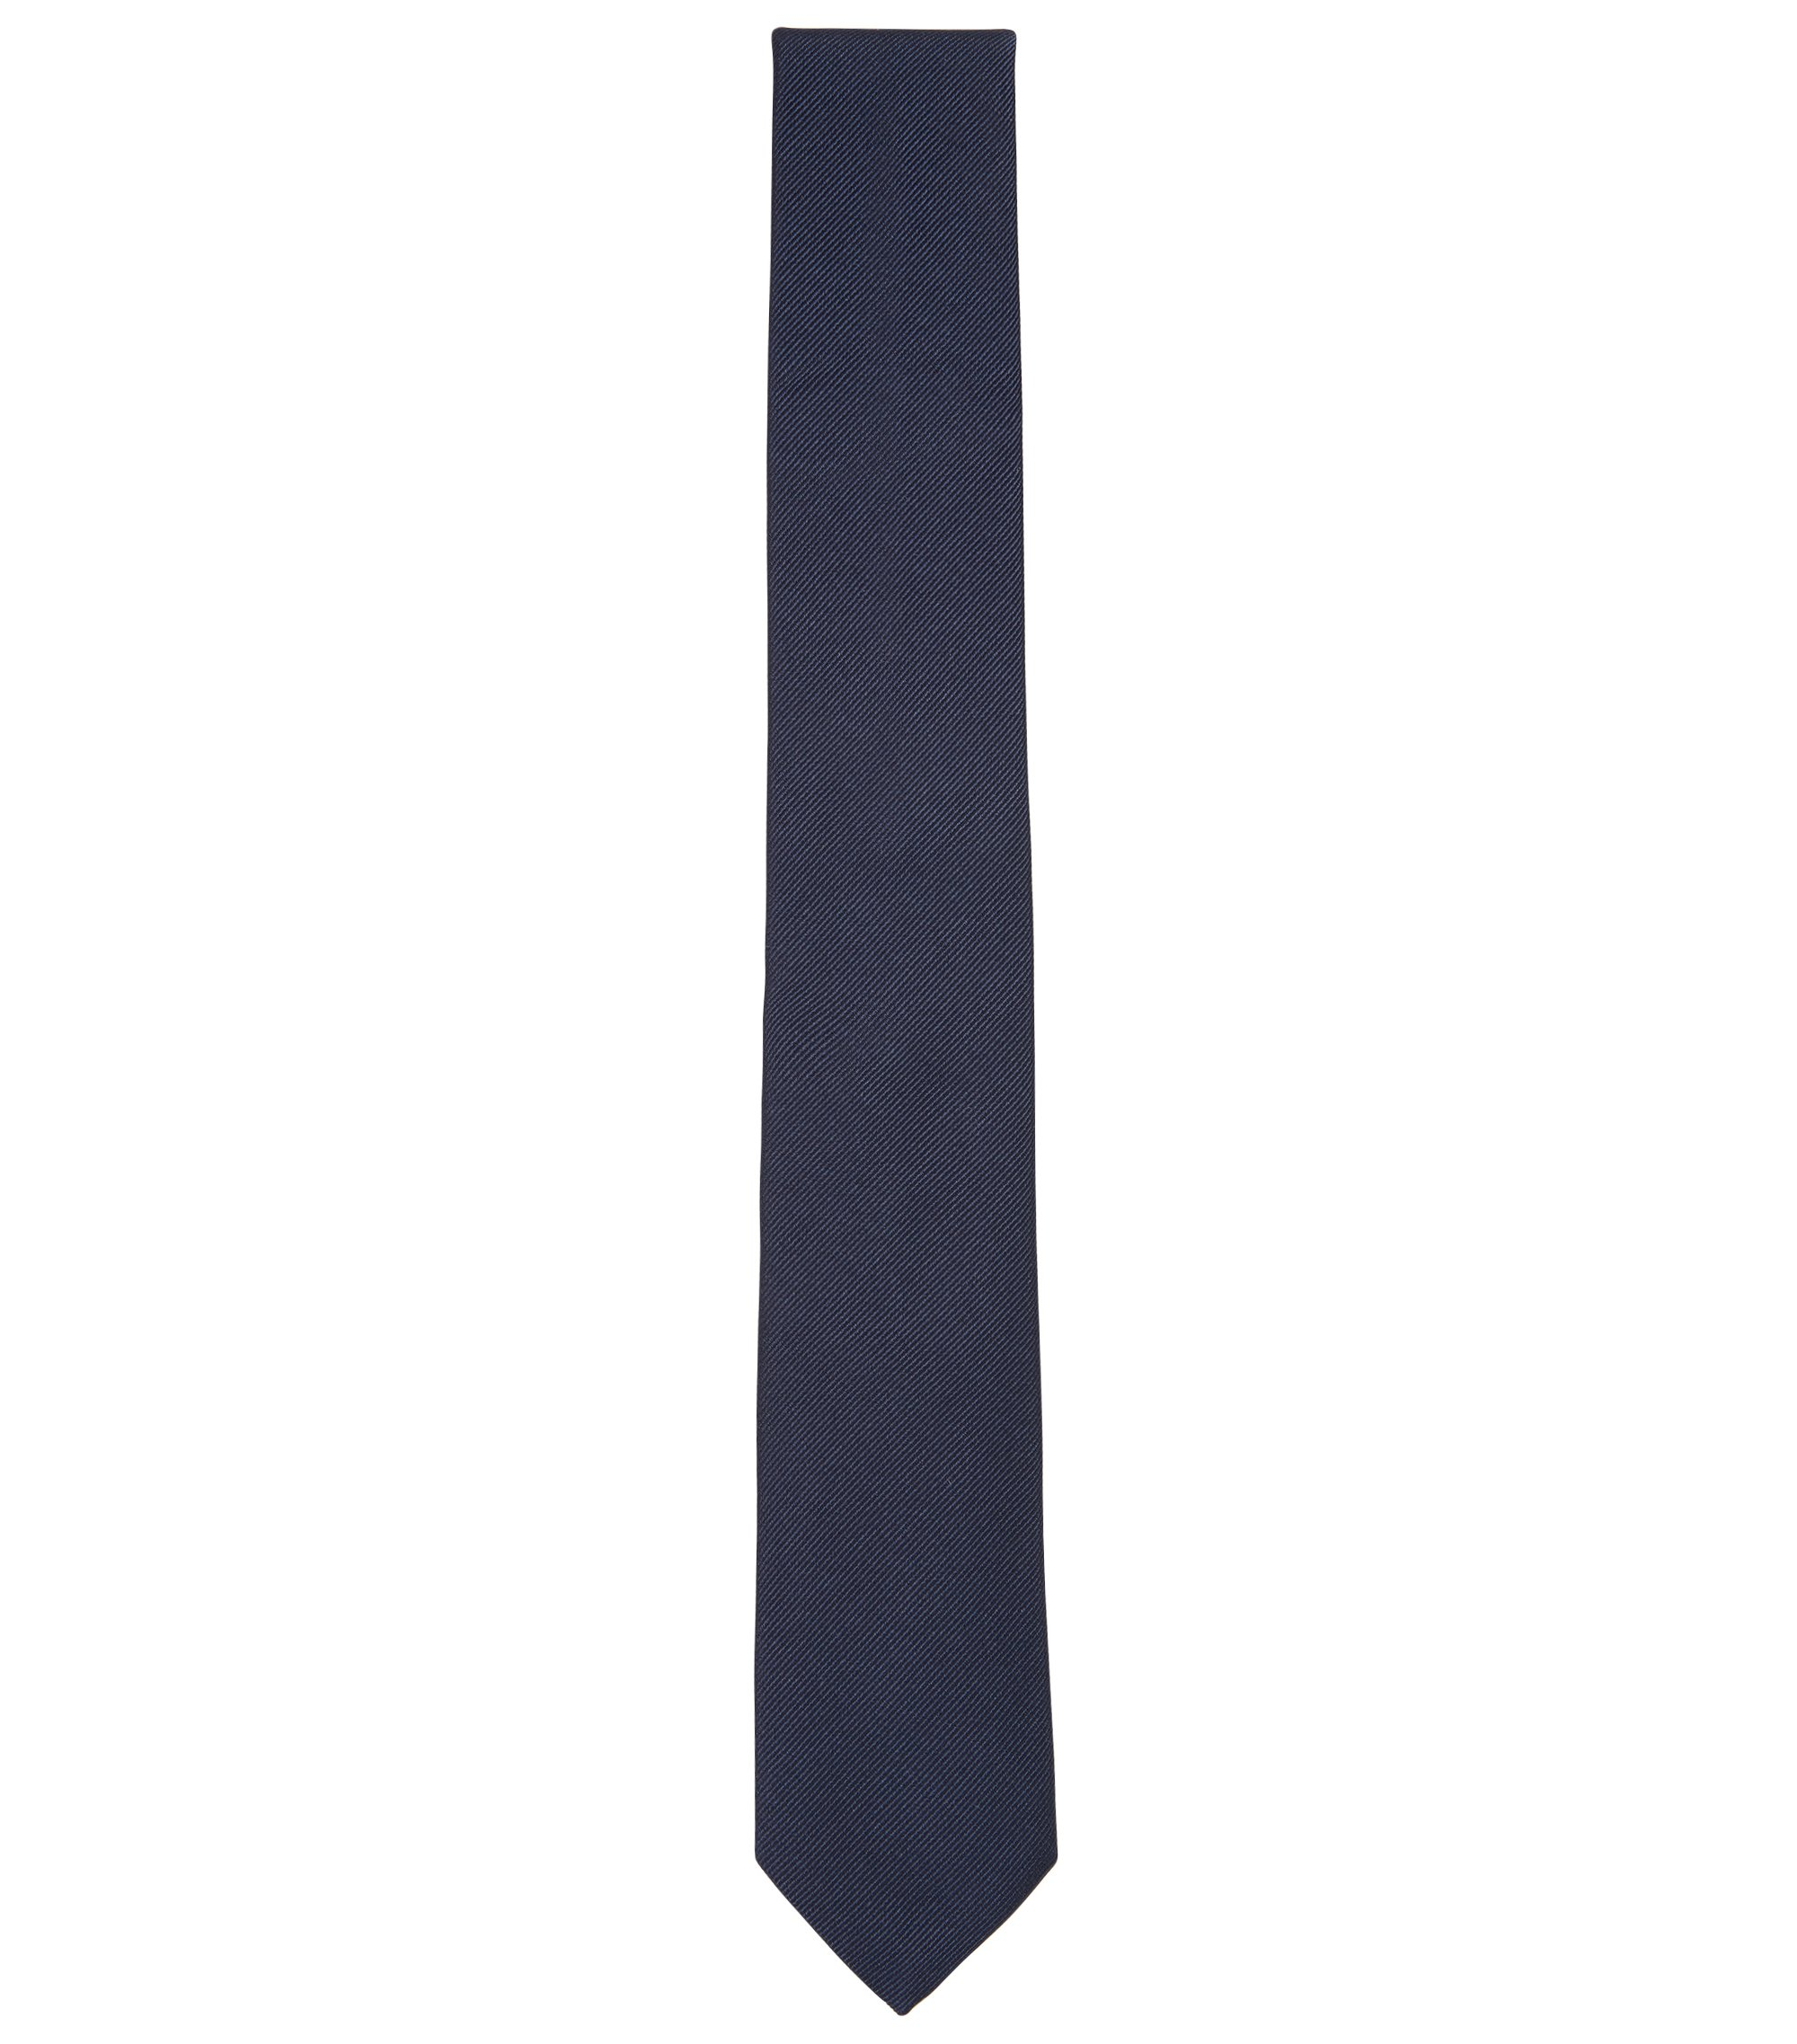 BOSS Tailored Italian Silk Twill Slim Tie, Dark Blue